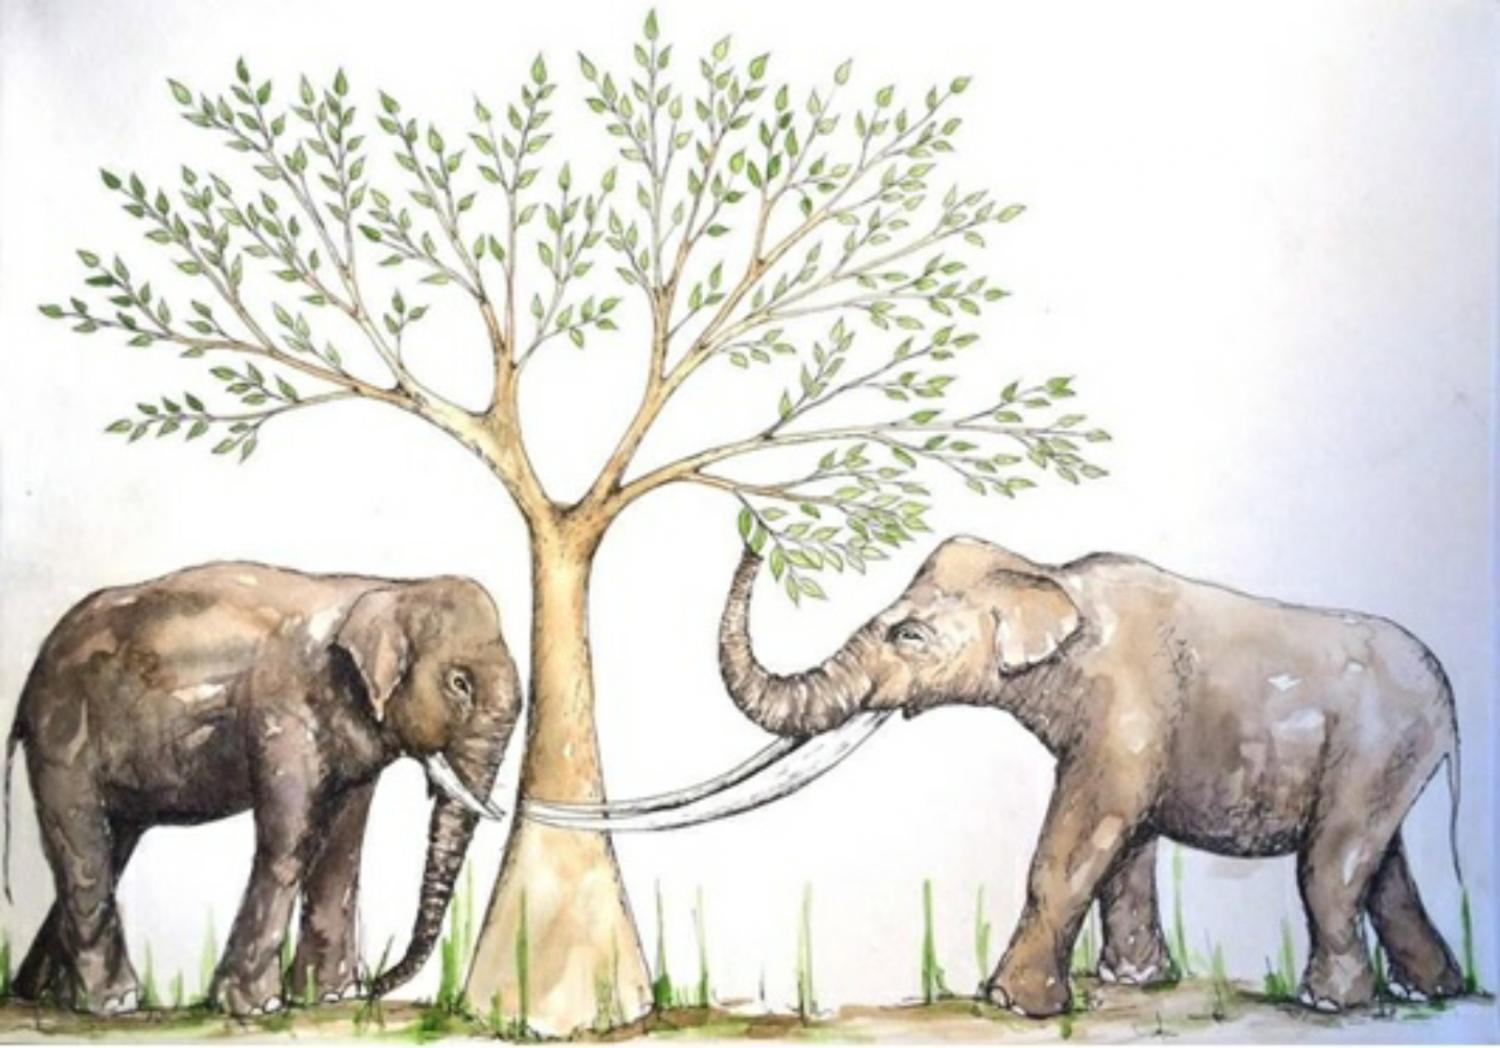 tooth wear sheds light on the feeding habits of ancient elephant